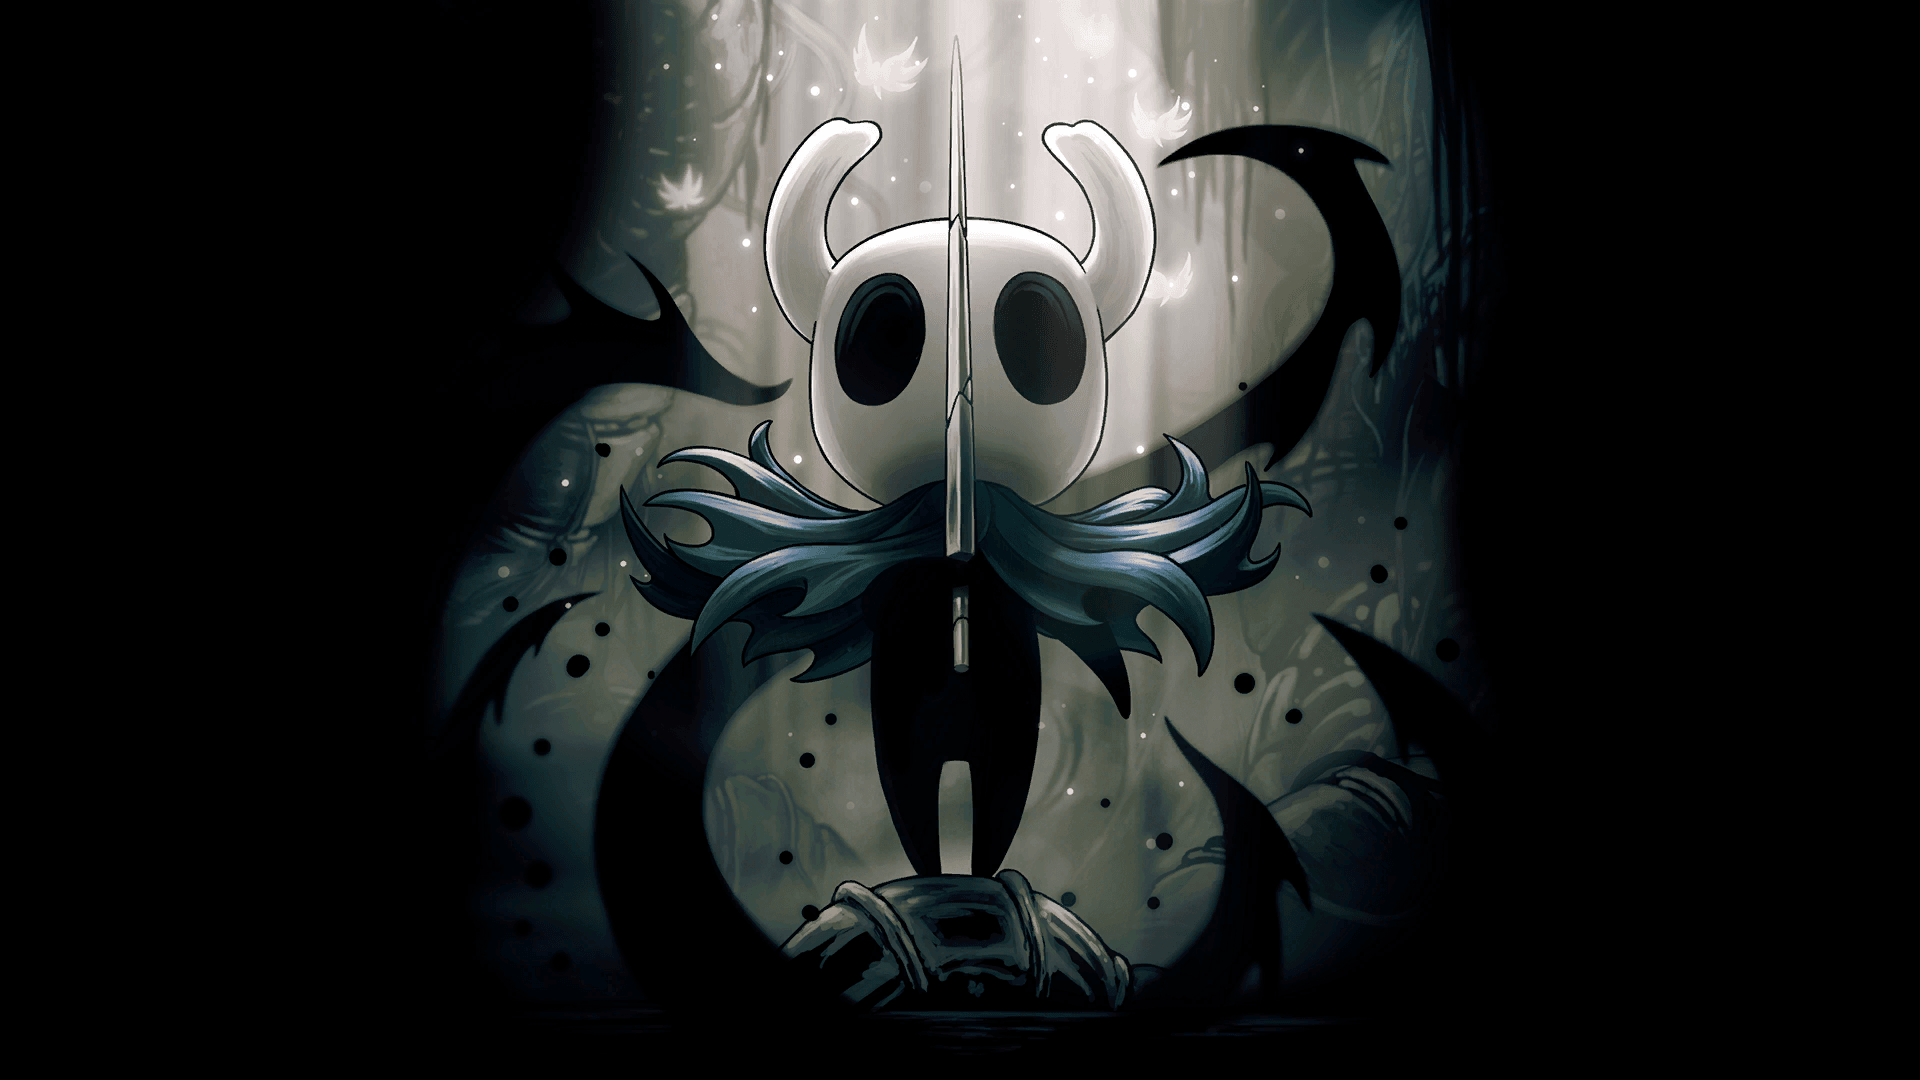 Immagine Promo Di Hollow Knight